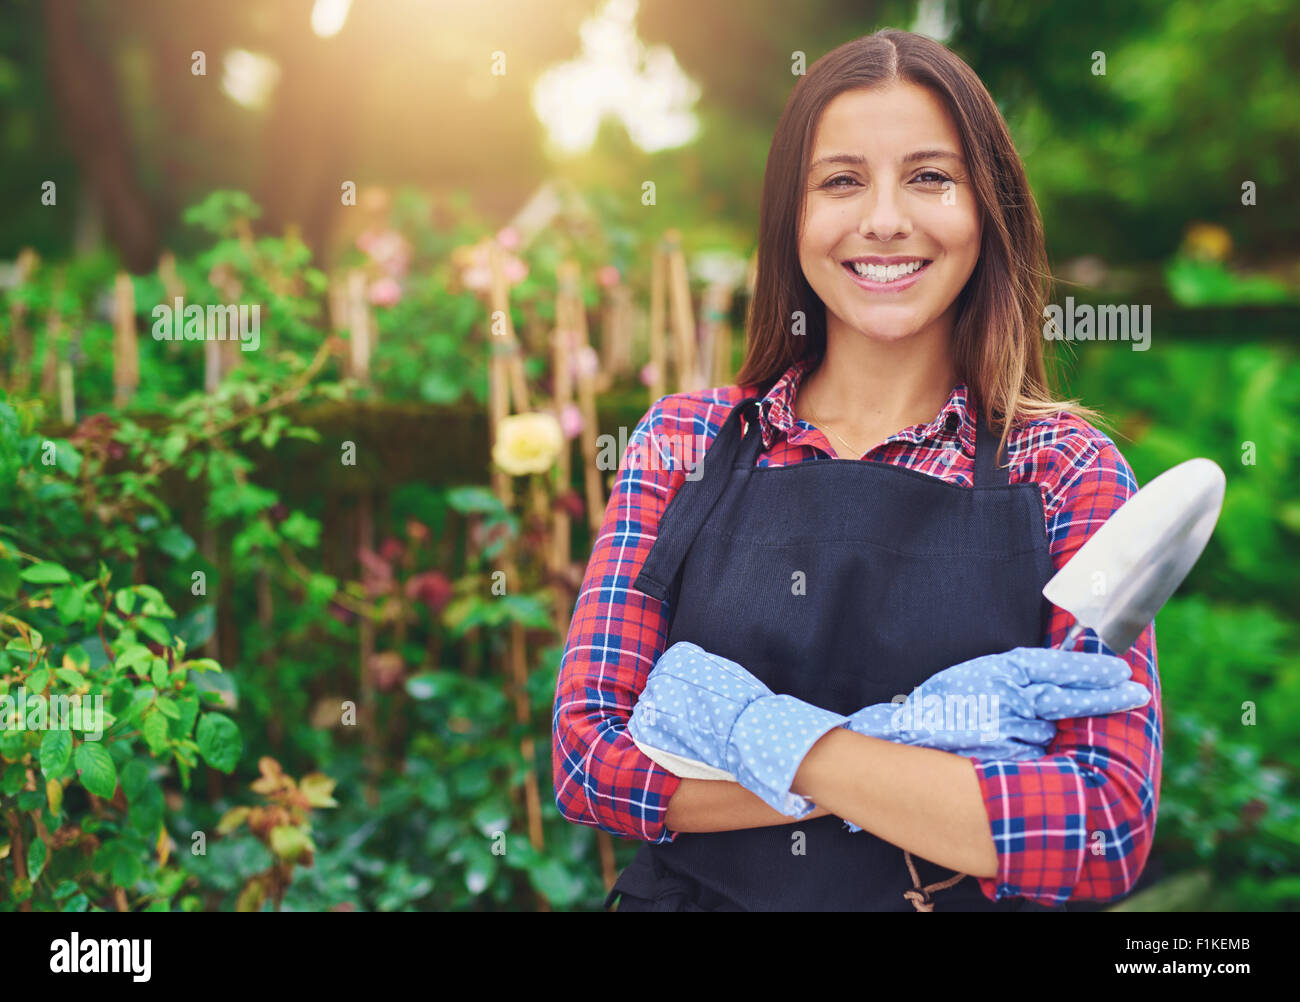 Smiling successful young nursery owner standing amongst her plants with folded arms and a trowel in her hands beaming - Stock Image